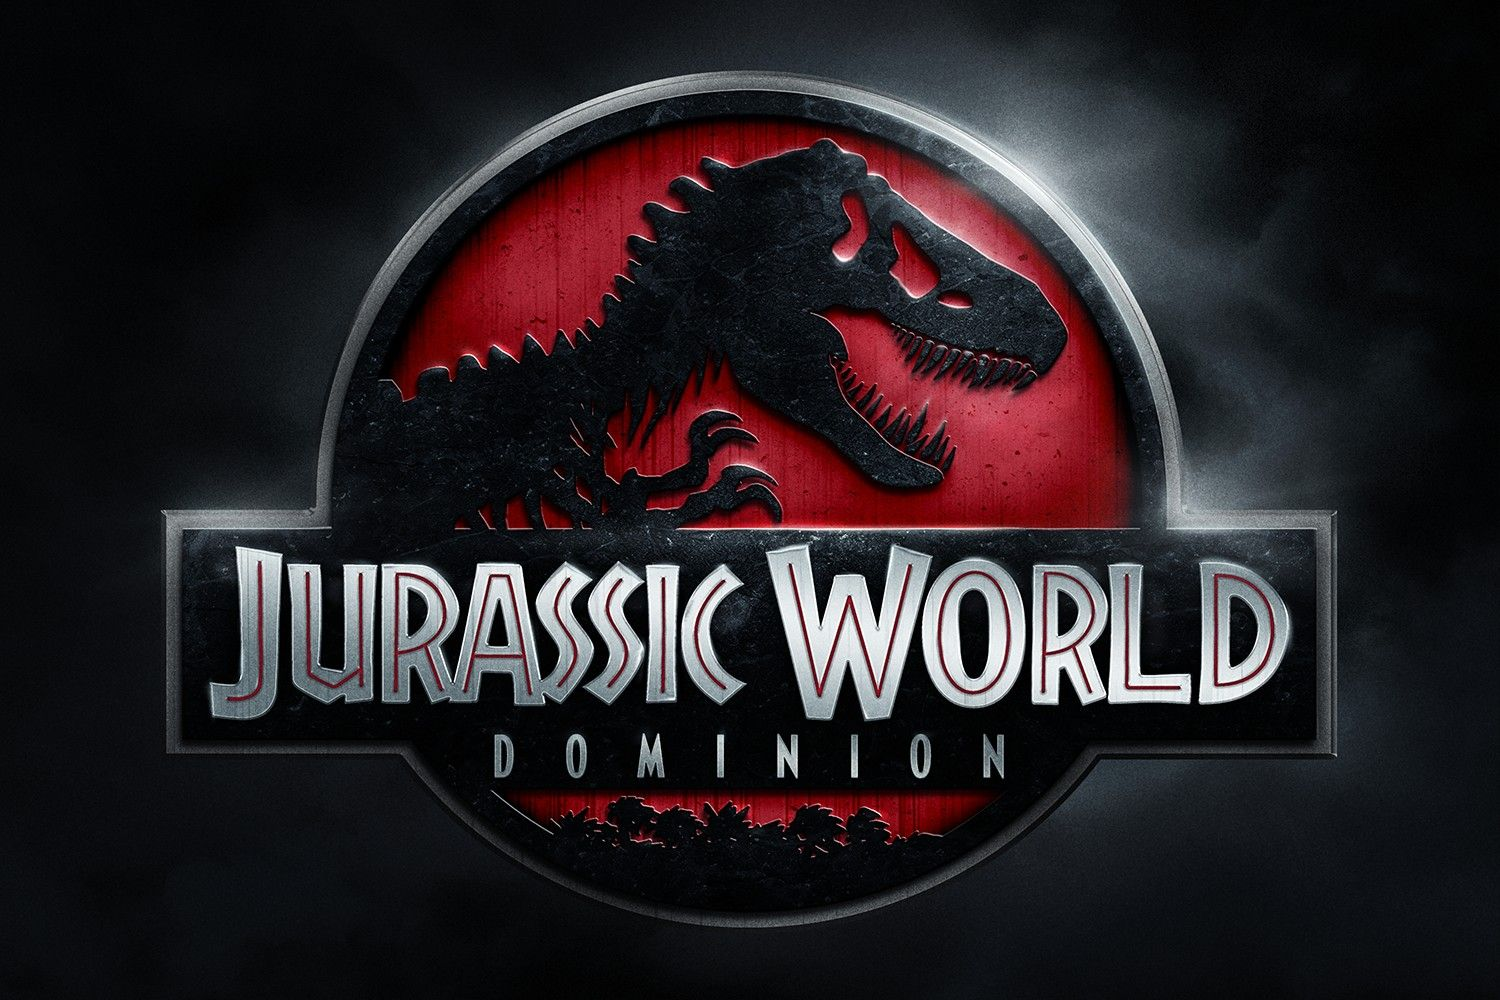 Jurassic World 3 Release Date Delayed To 2021